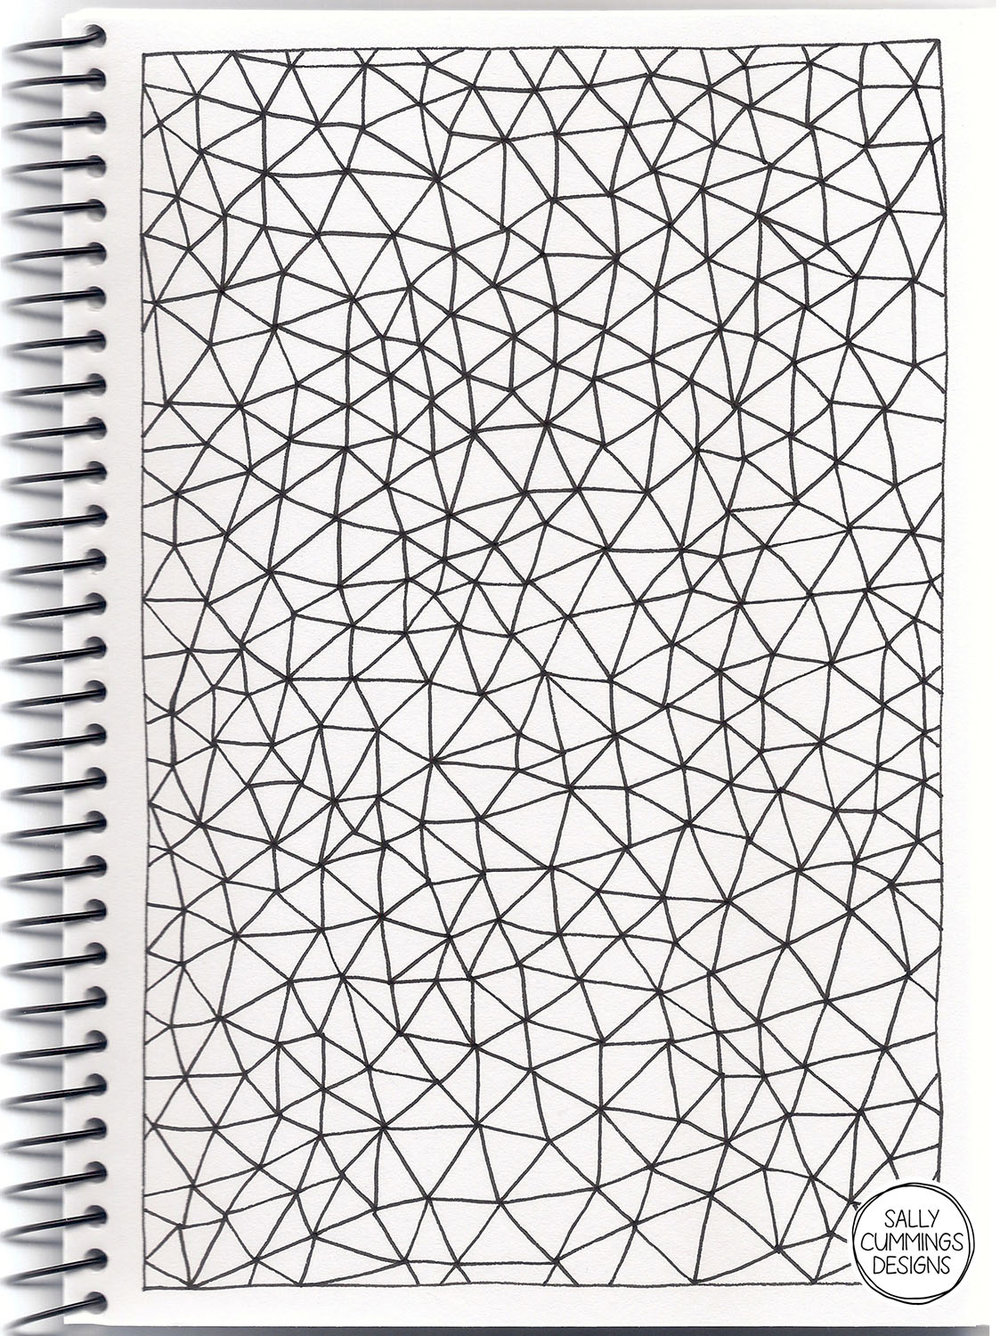 Sally Cummings Designs - Connectivity sketchbook page